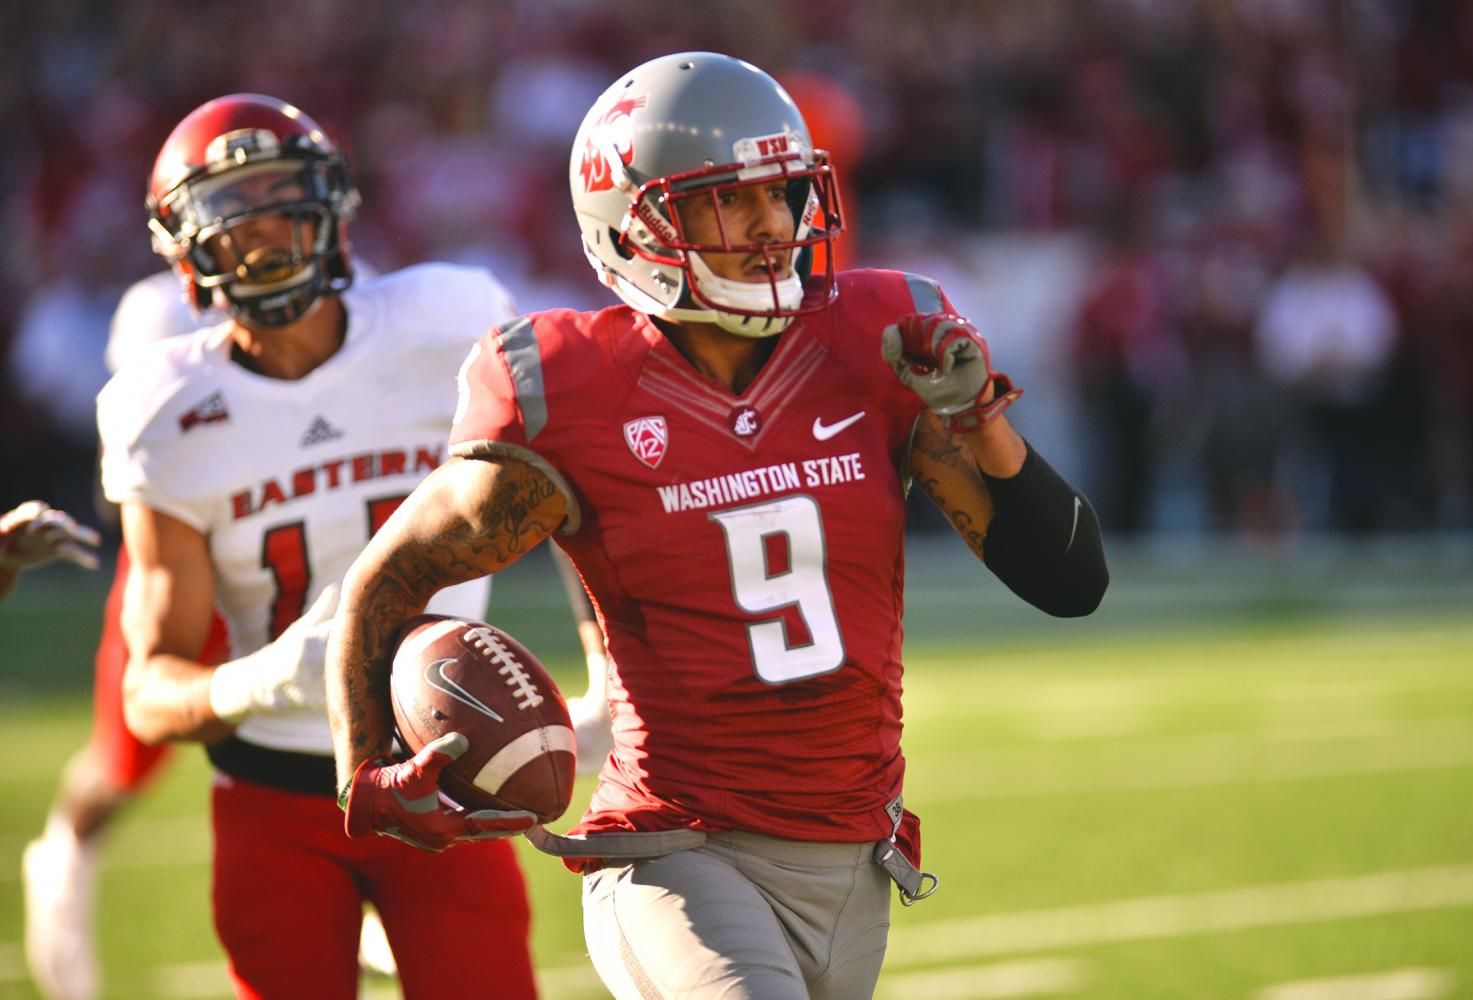 Former WSU receiver Gabe Marks runs with the ball in a game against Eastern Washington last season